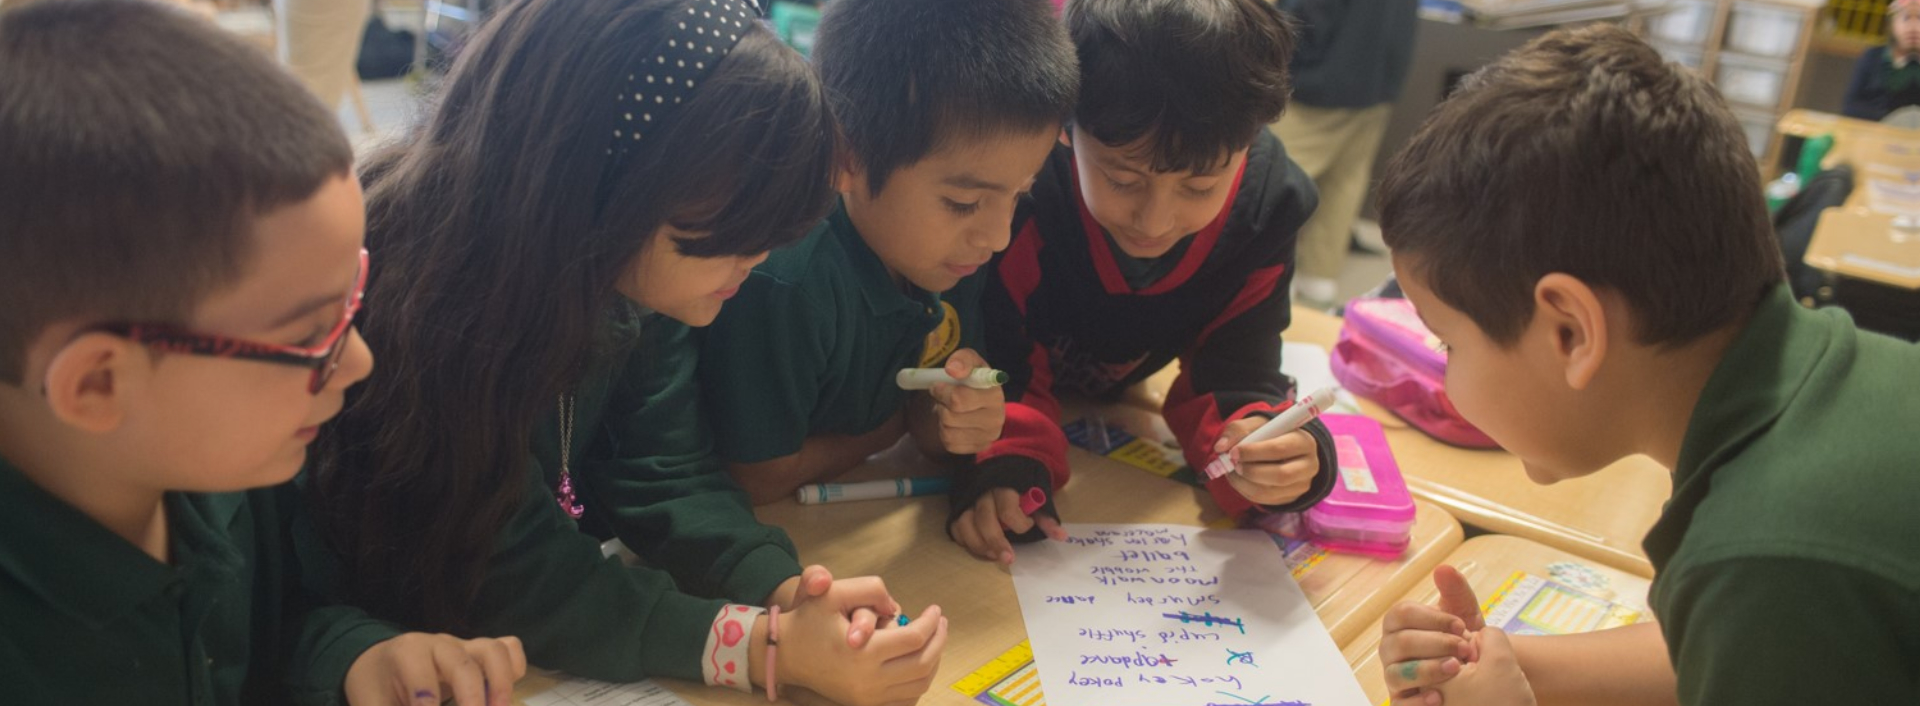 Group of students writing